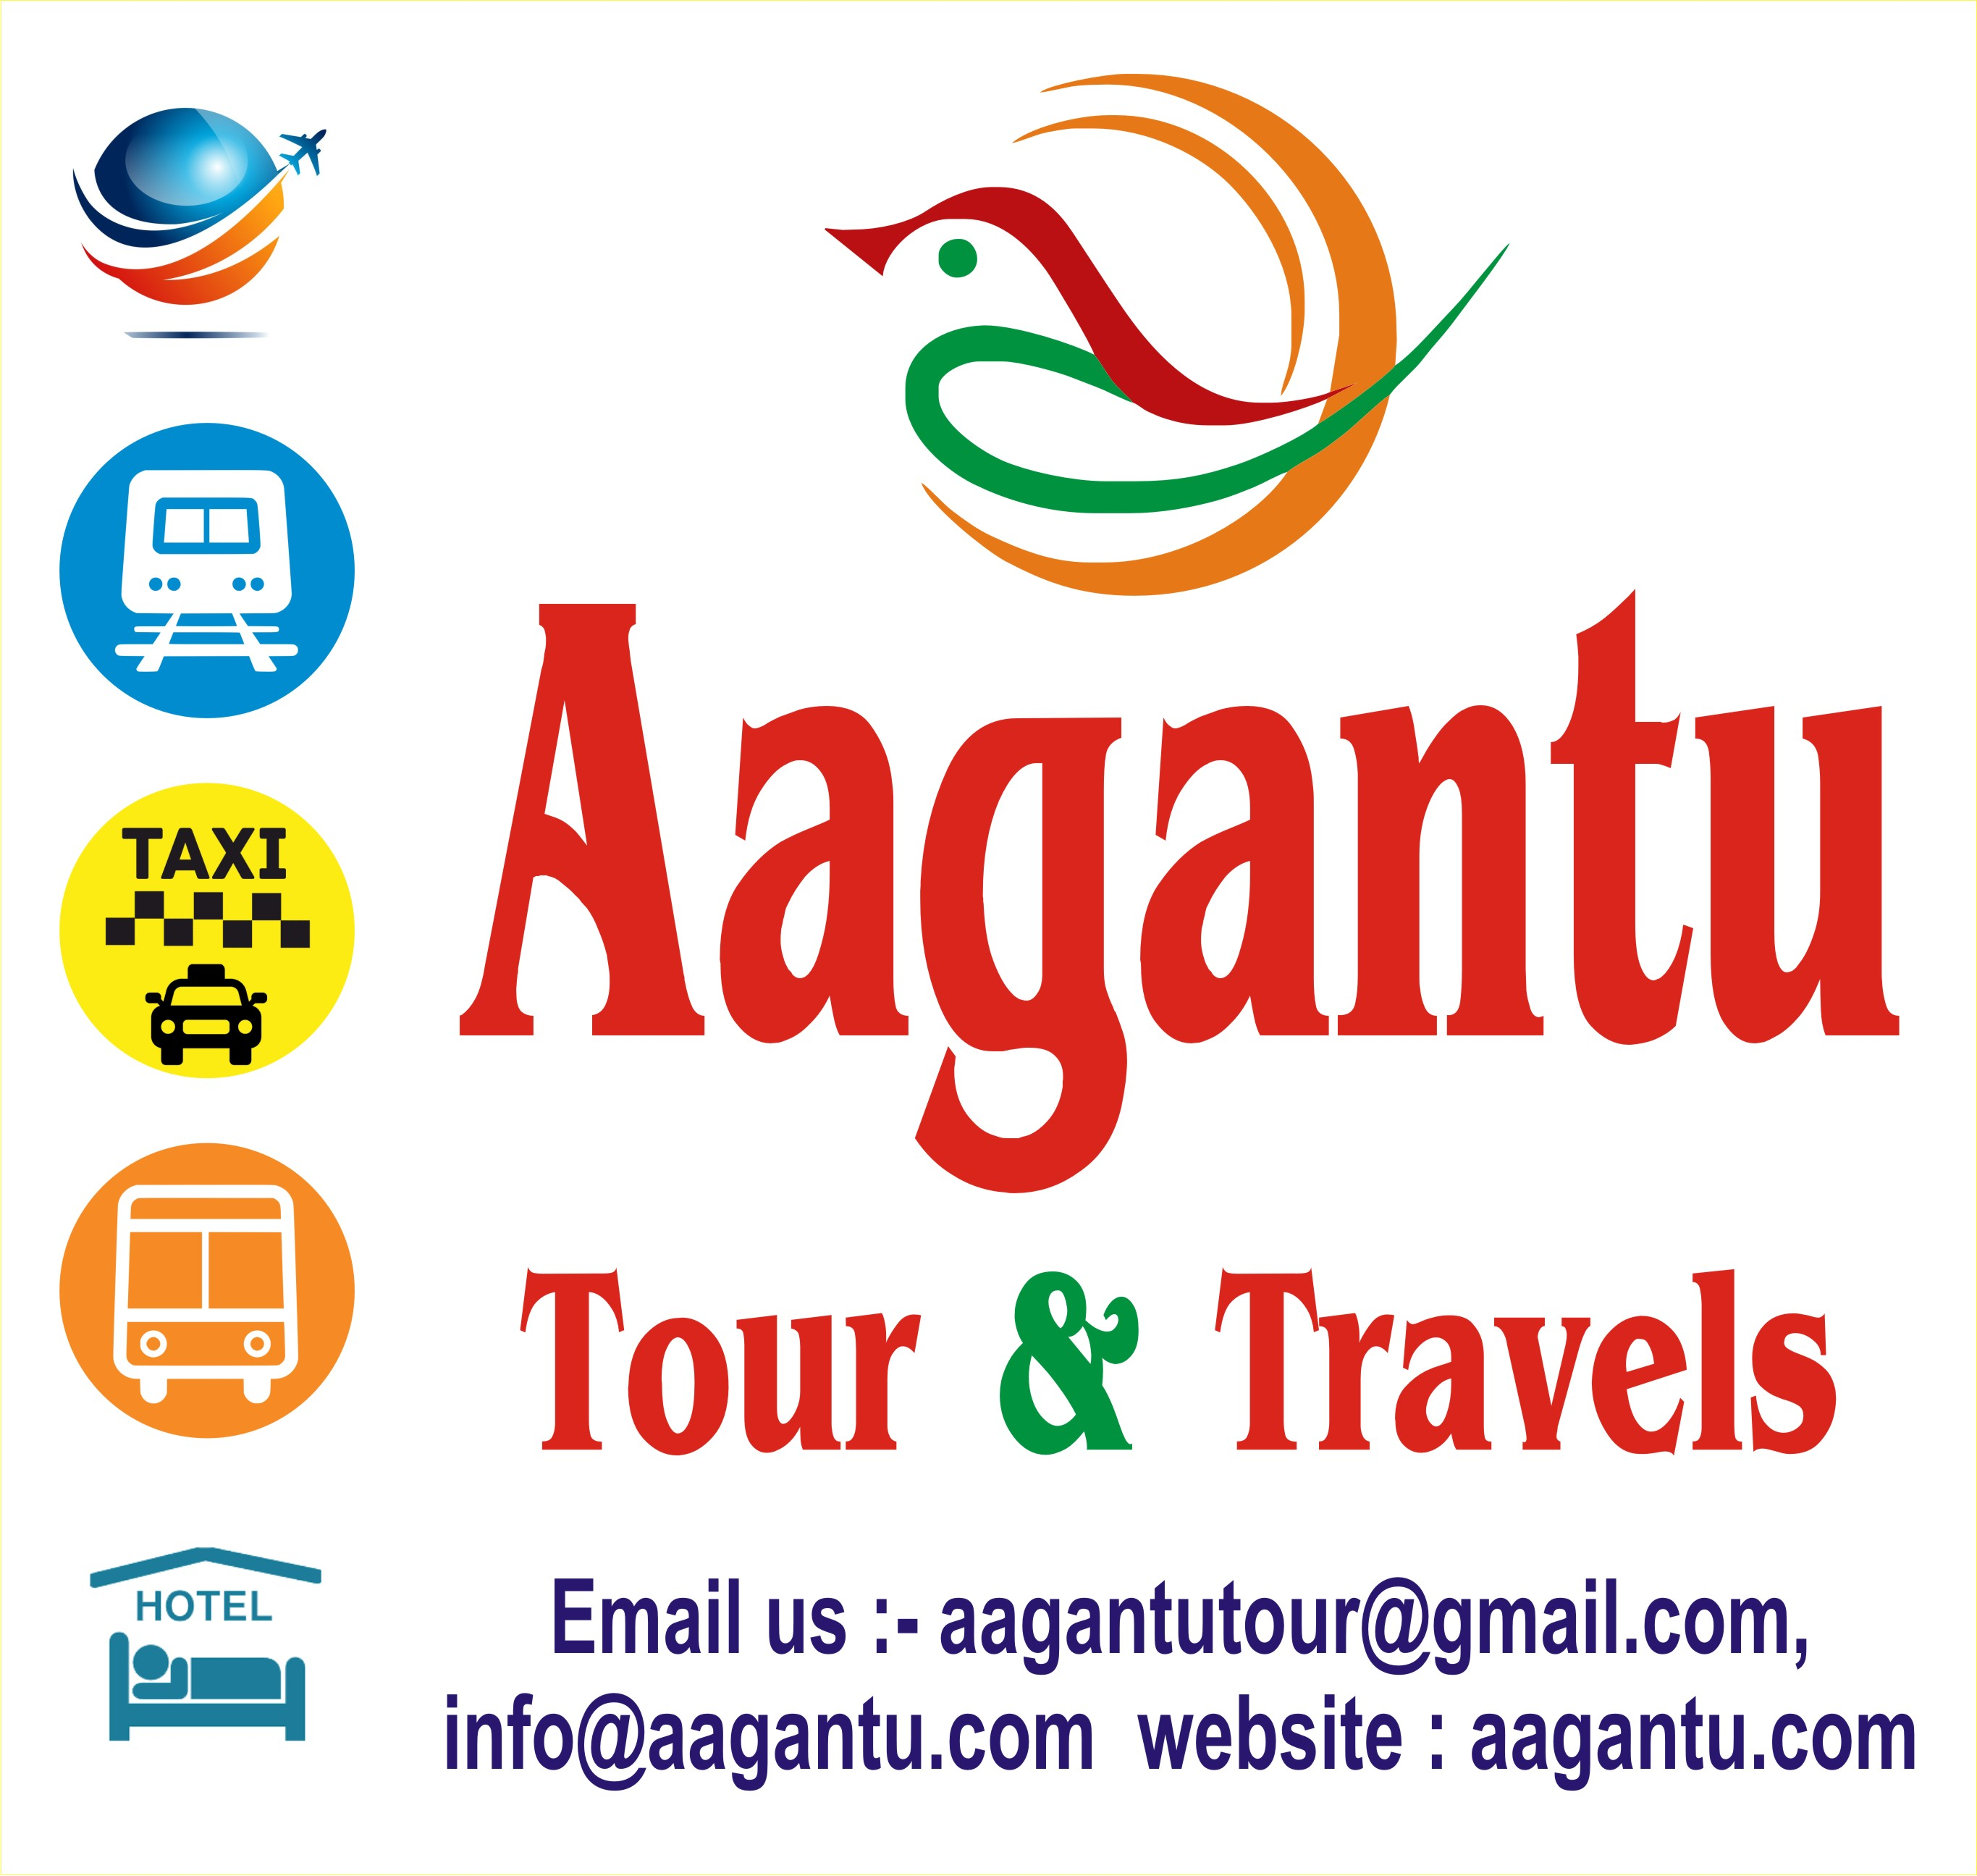 Aagantu Tour & Travels